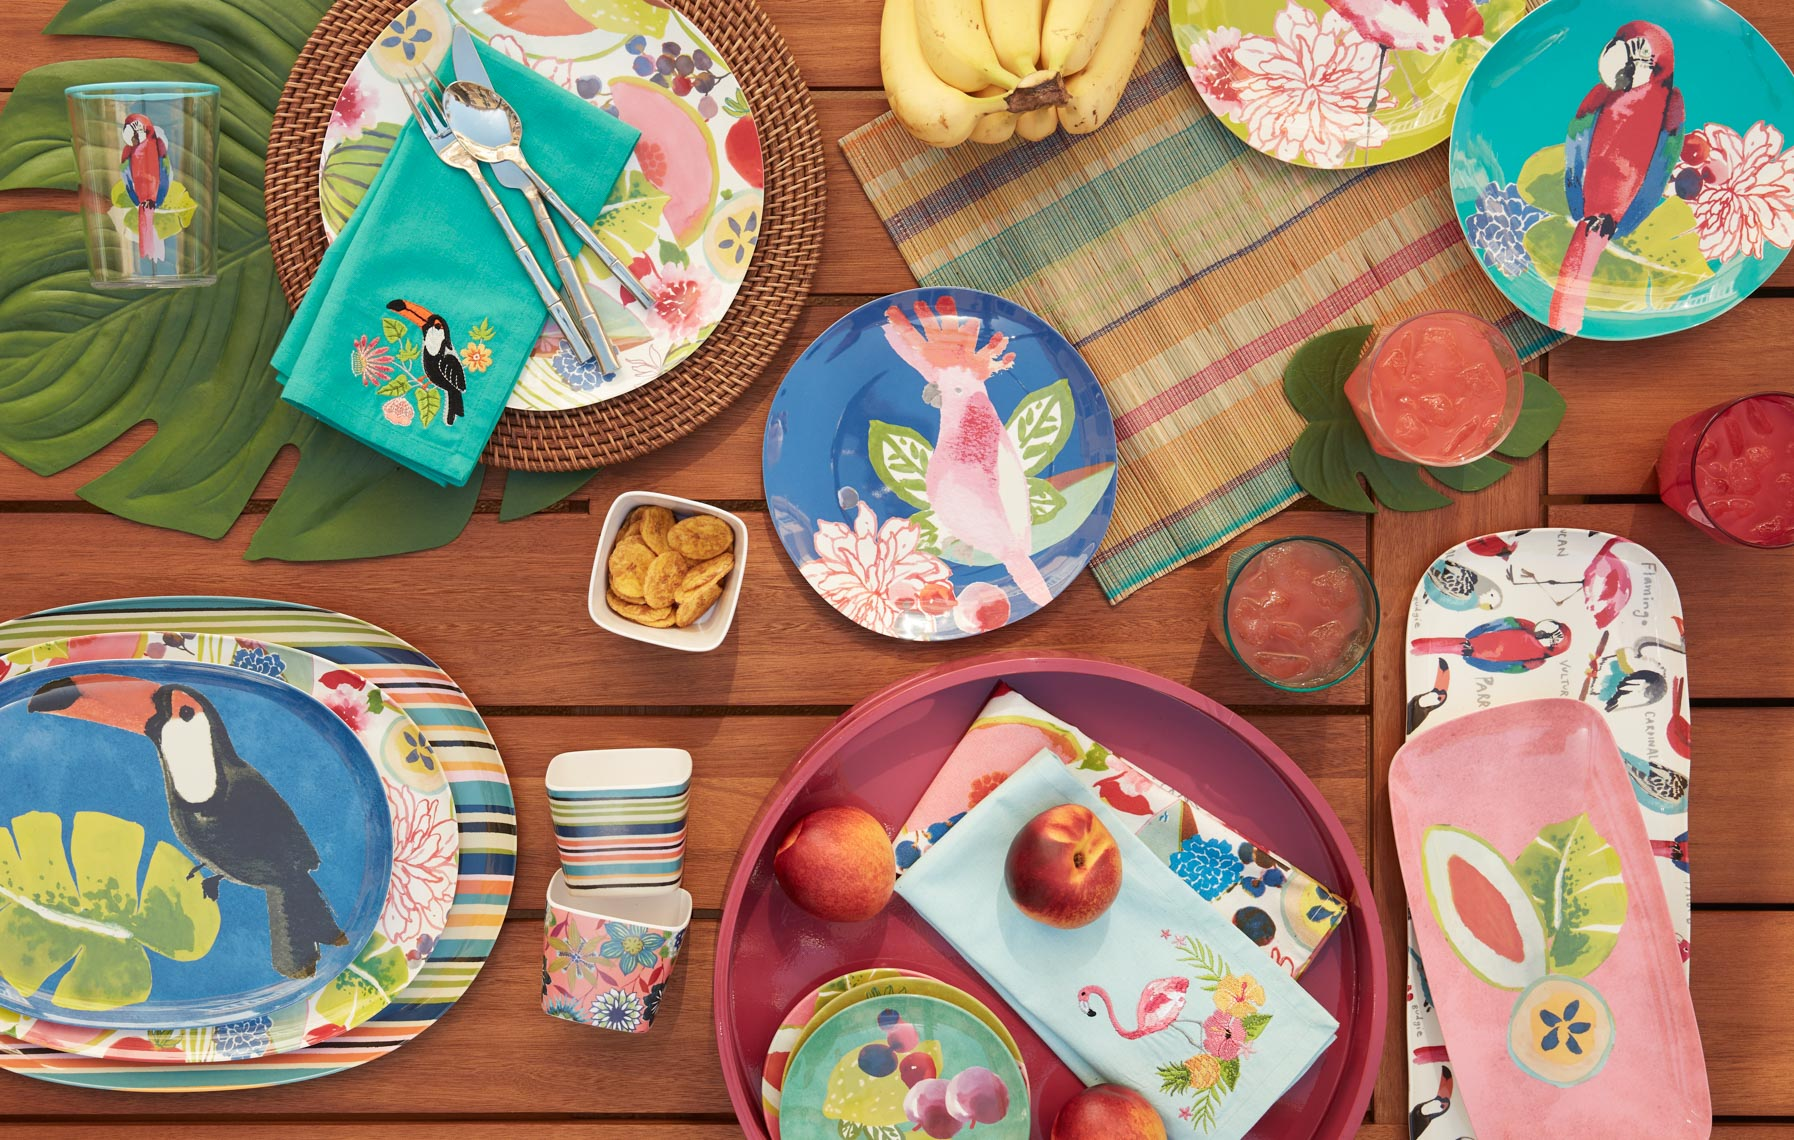 Colorful Plasitic dinnerware with fruit and placemats and artichokes on teak table San Francisco product photographer